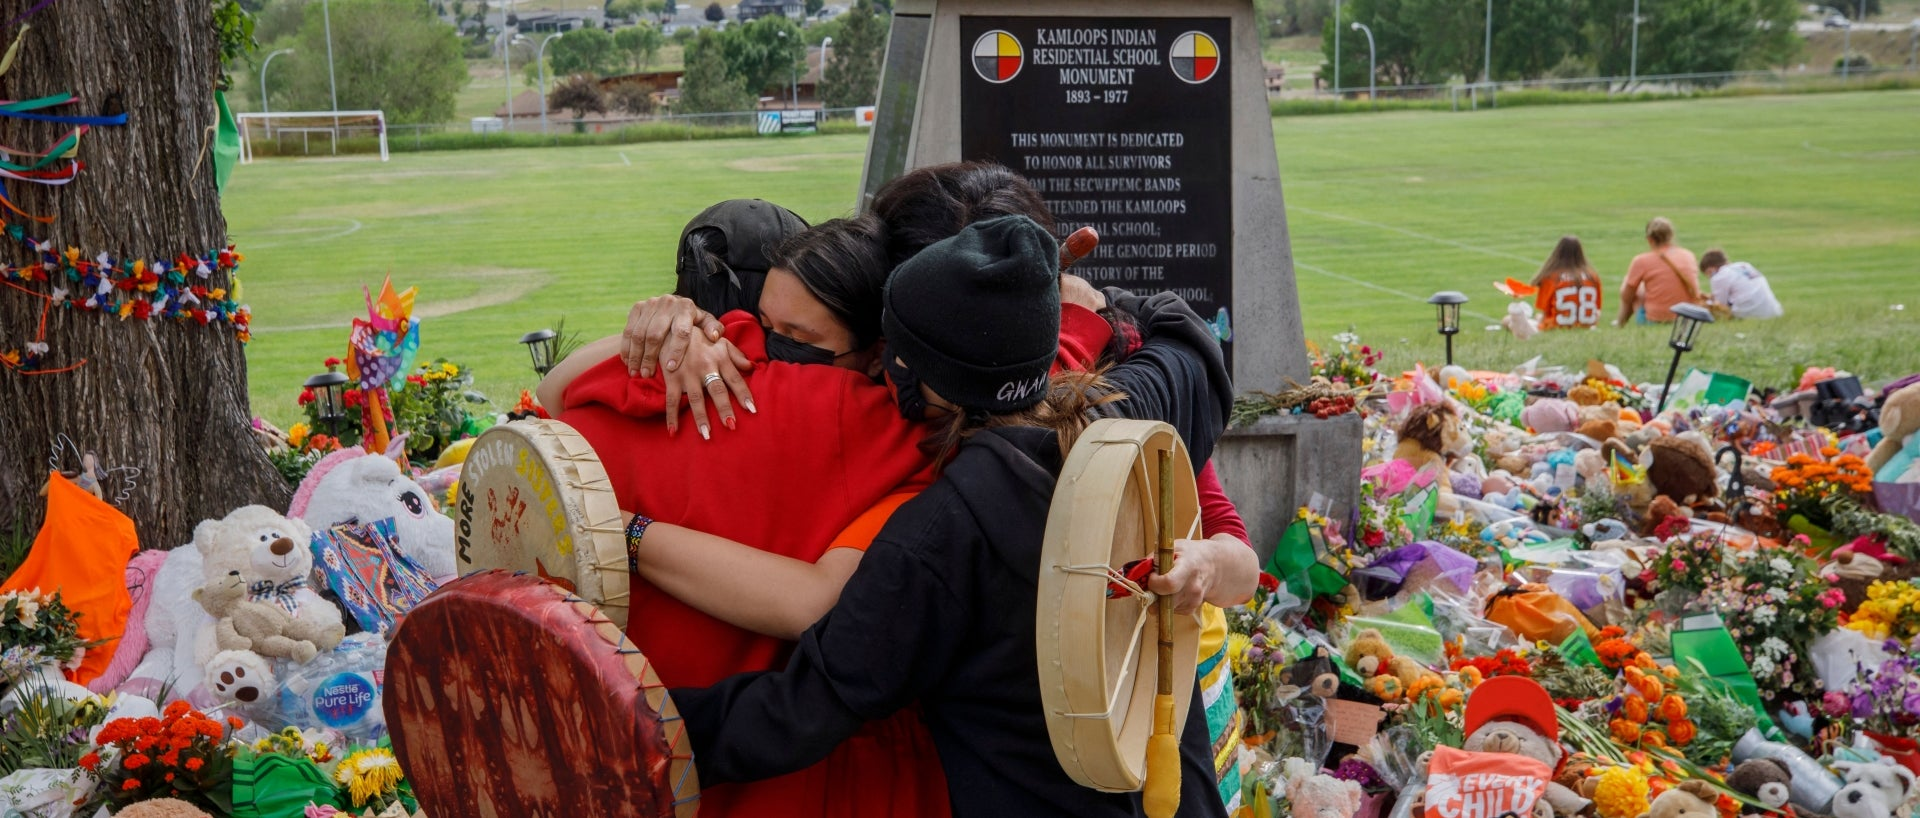 Tributes in front of the former Kamloops Residential School continue as the country grieves the 215 bodies of Indigenous children buried in a mass grave.